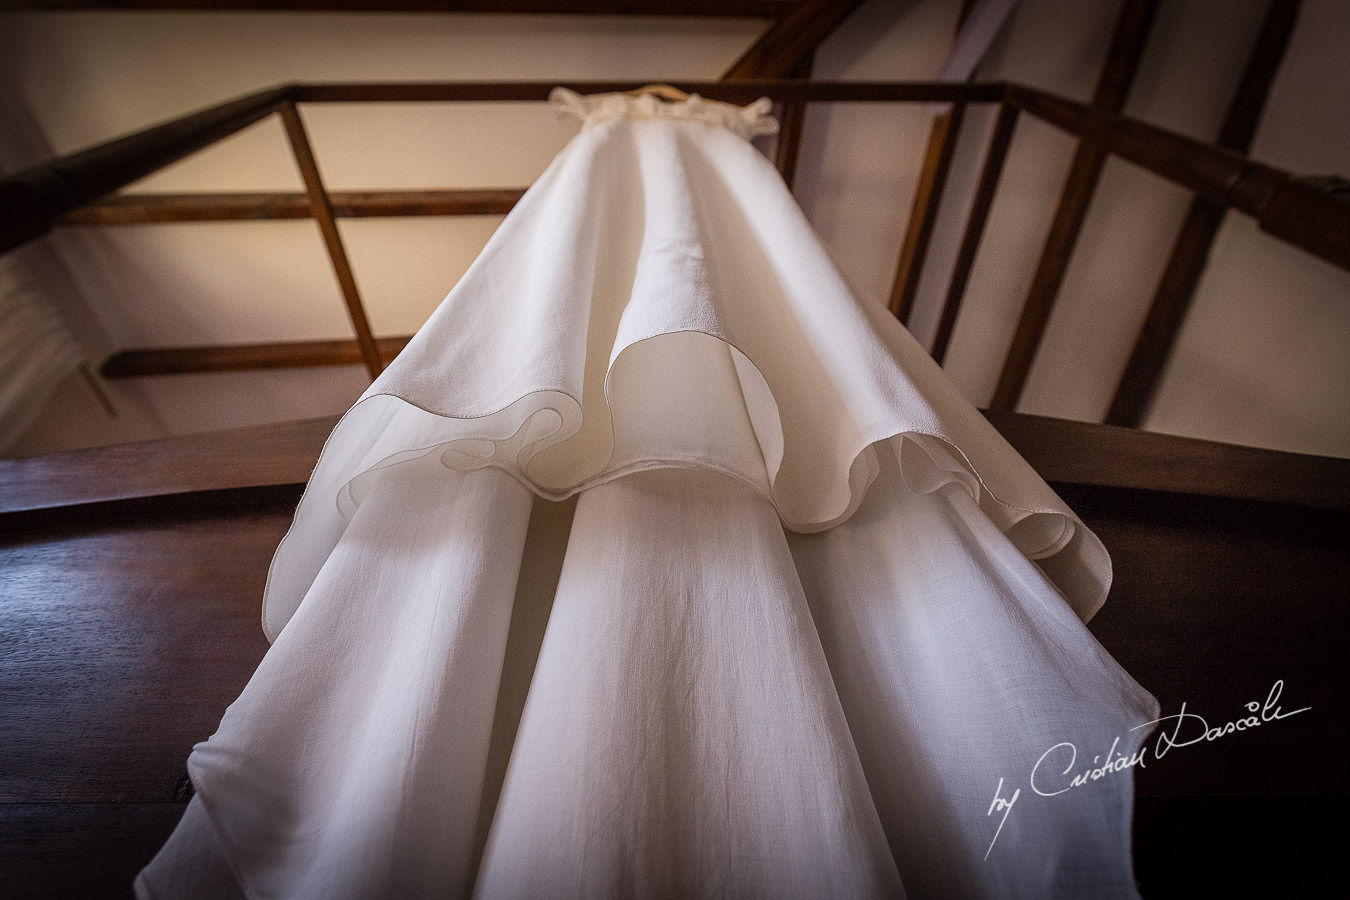 A beautiful wedding day at the Vasilias Nikoklis Inn in Paphos, captured by Cristian Dascalu. The Bride's Dress.